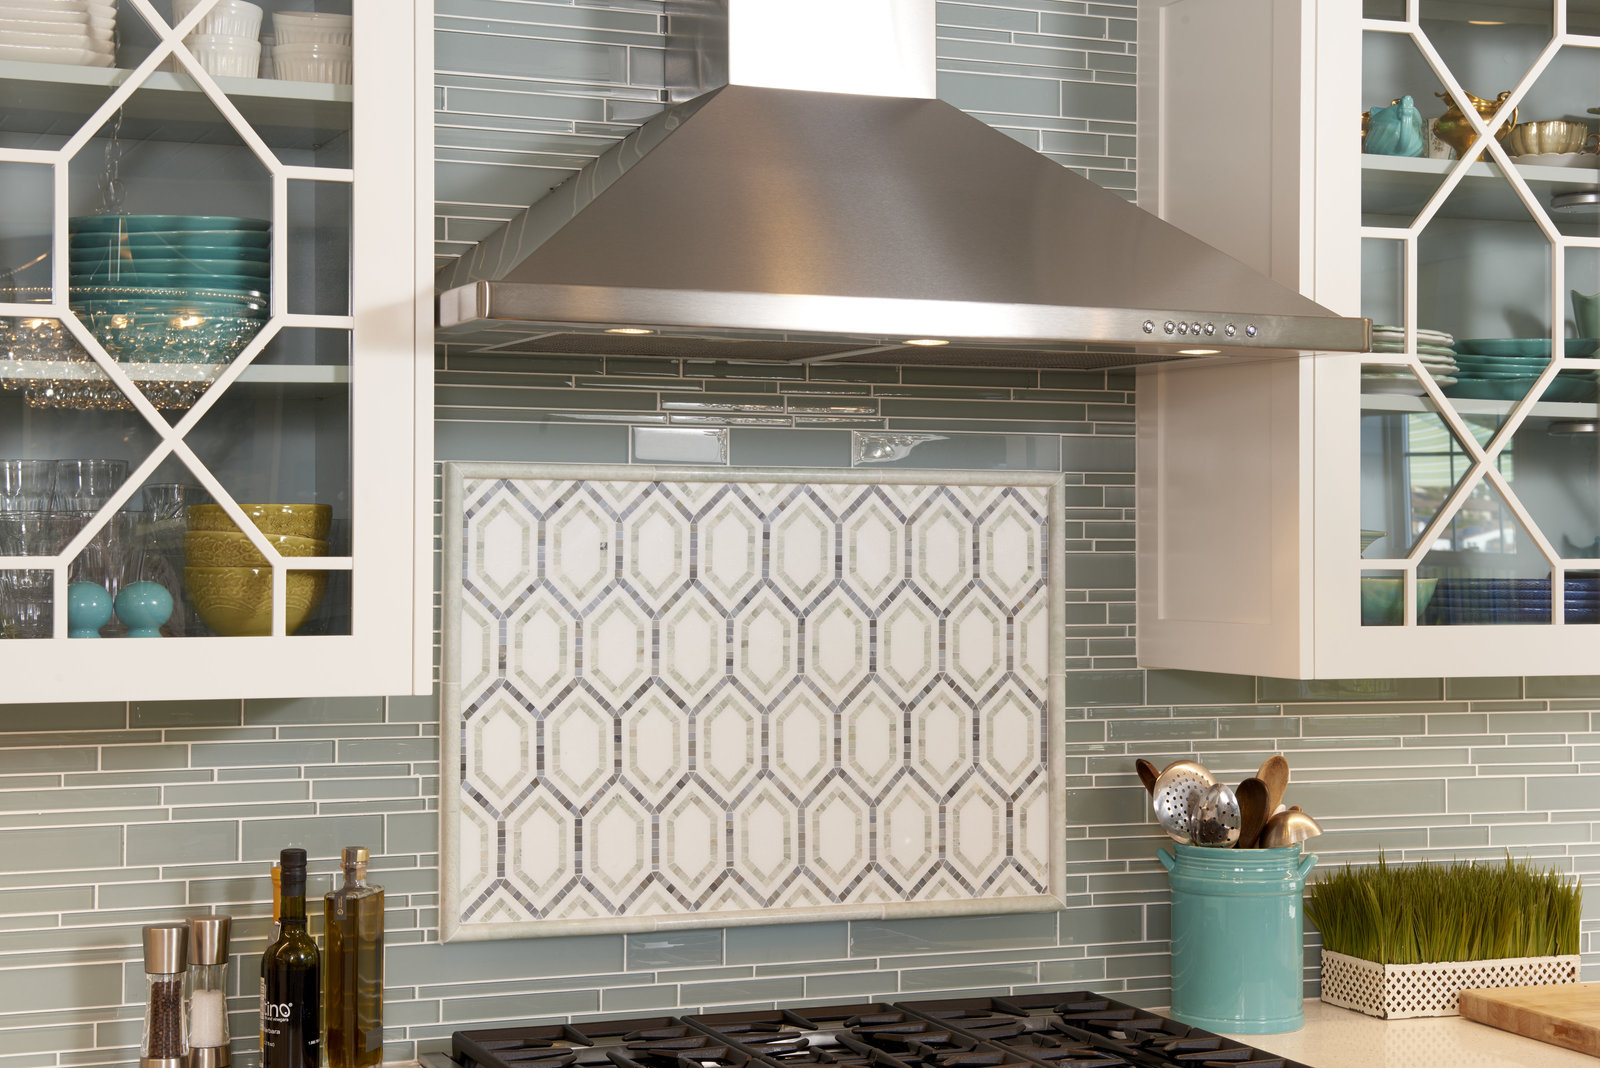 Beach House Kitchen Mosaic Design